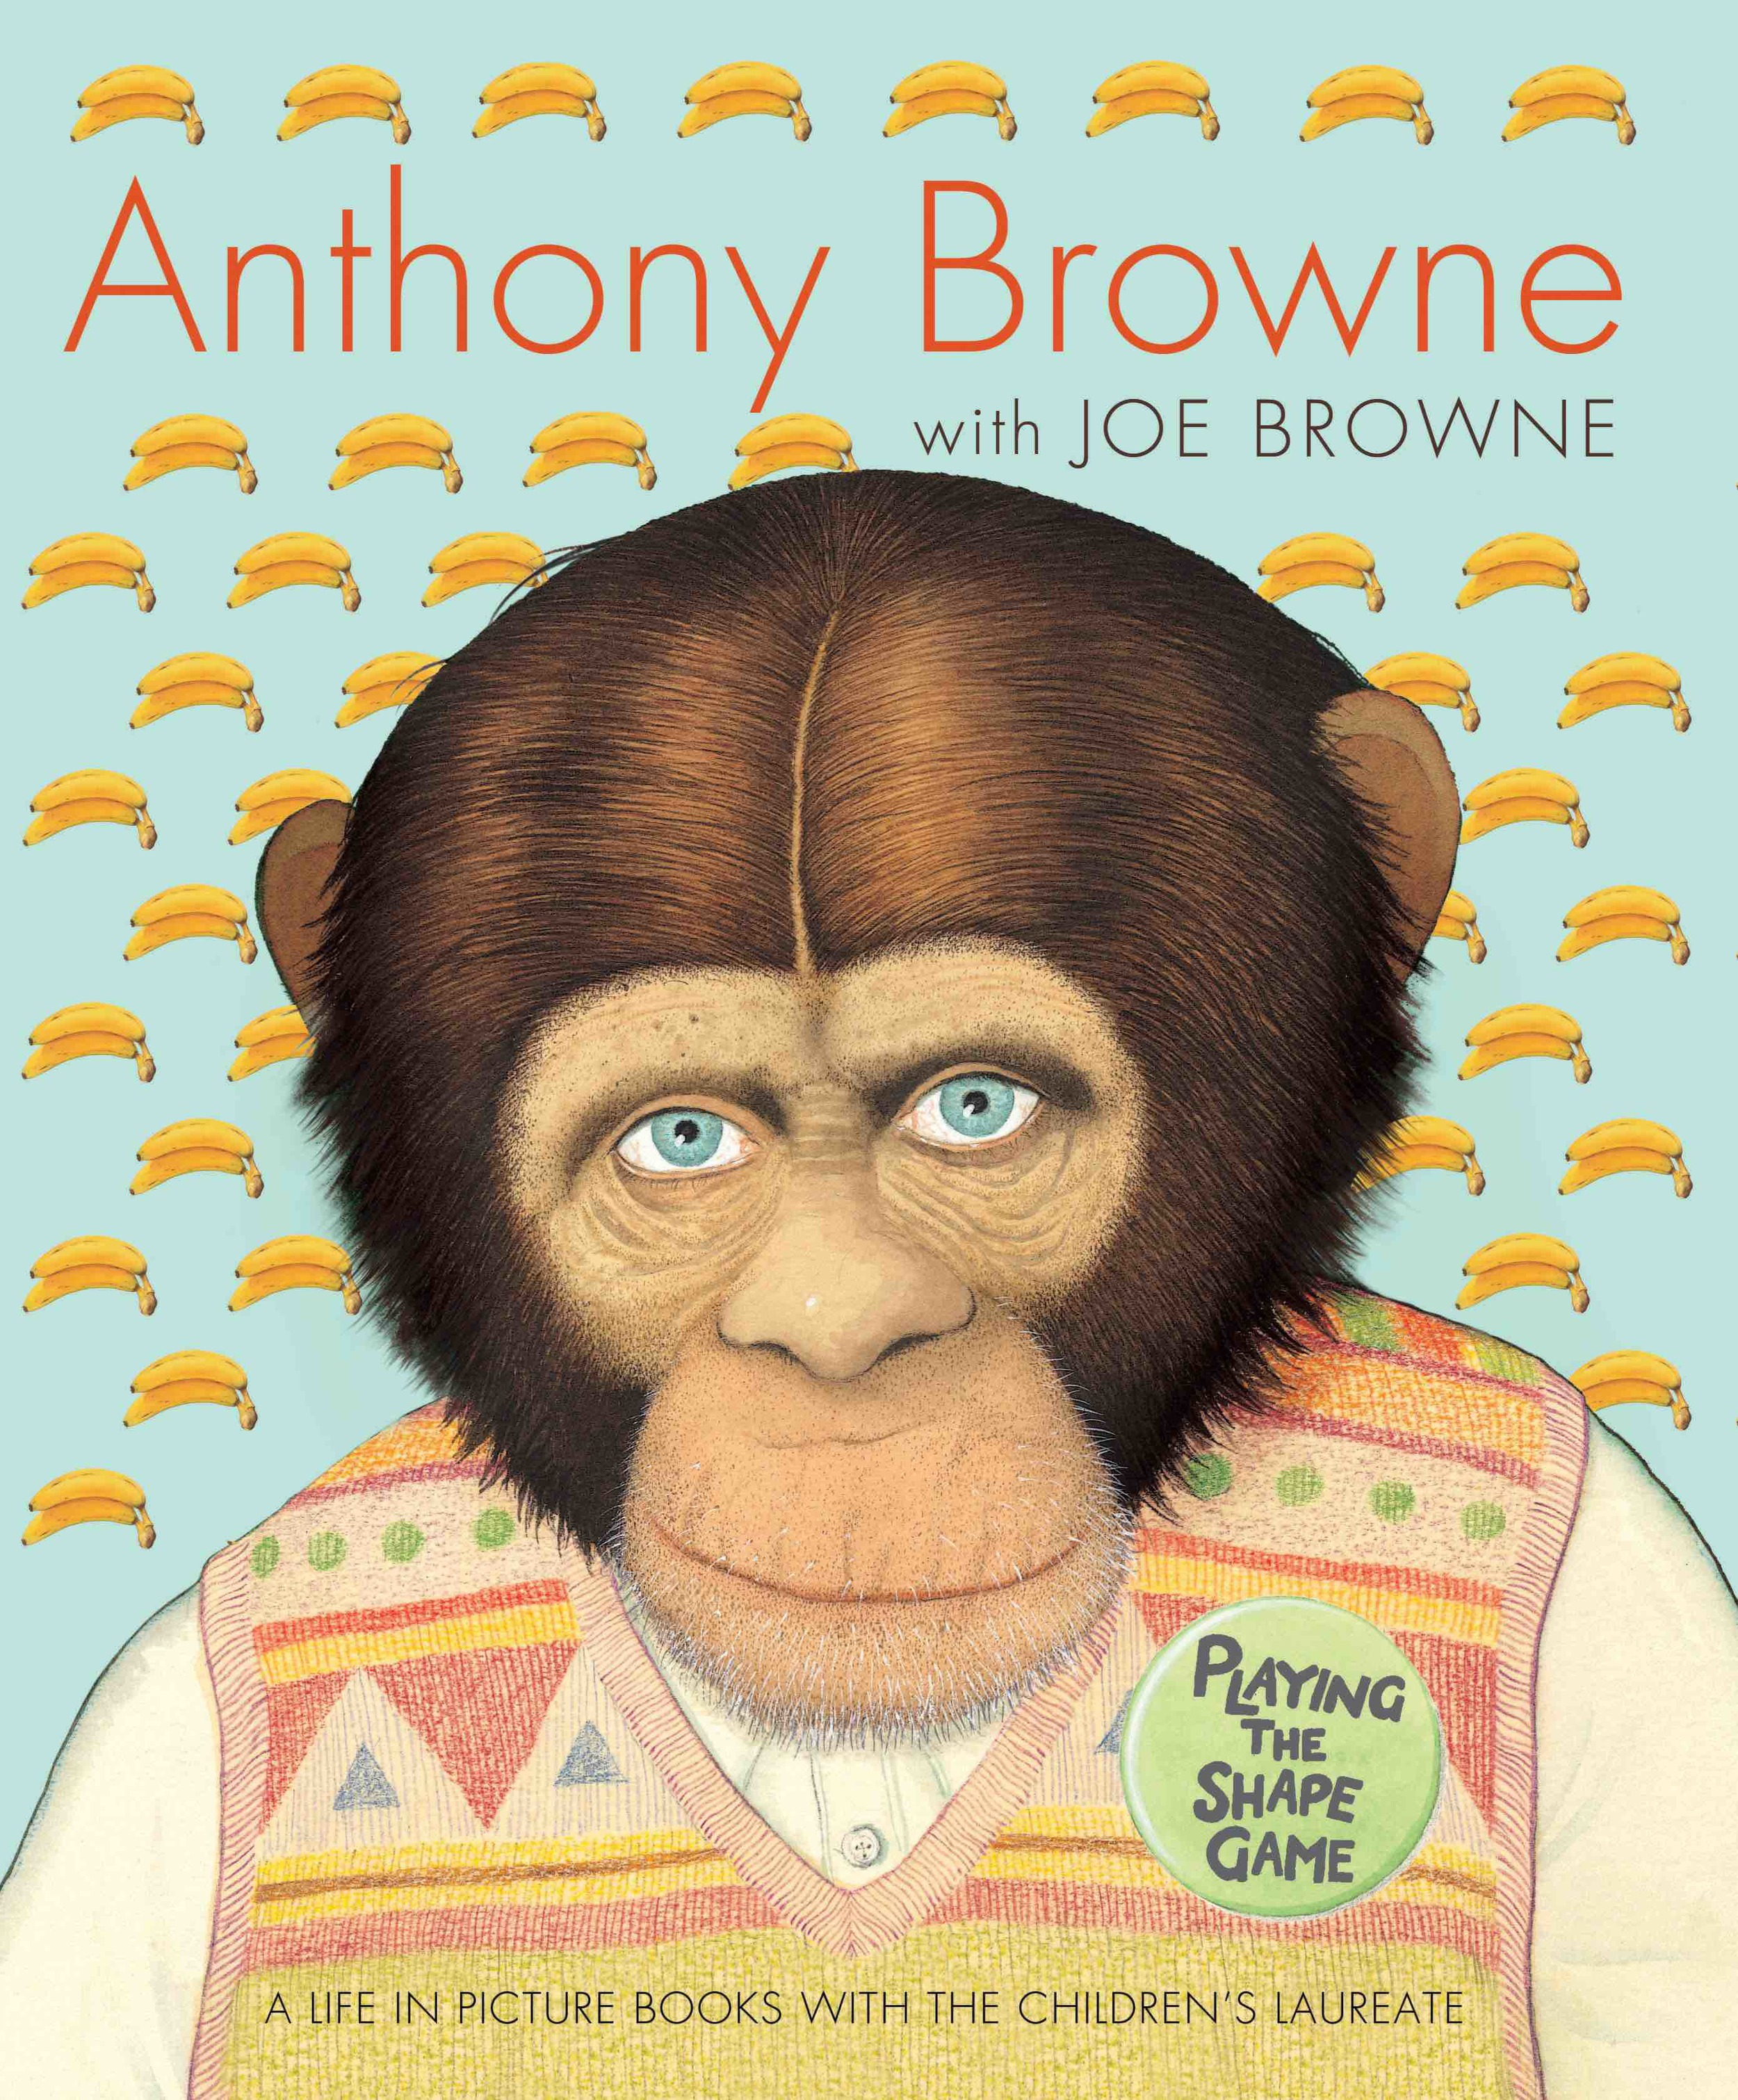 """Written with Joe Browne, 2011  Anthony Browne is one of the world's most celebrated creators of picture books, with classics such as """"Voices in the Park"""", """"Willy and Hugh"""", and """"Gorilla"""" to his name. He has won the Kate Greenaway Medal twice, the Kurt Maschler 'Emil' Award three times, and in 2000 became the first British illustrator to win the Hans Christian Andersen Award. In recognition of his outstanding contribution to children's literature, he was appointed the UK Children's Laureate for 2009 to 2011 and to celebrate both this honour and his glorious career, we present a major retrospective of his life and work. Anthony shares insights into his childhood, his training, and his career as an artist, in this captivating memoir featuring over 200 illustrations."""